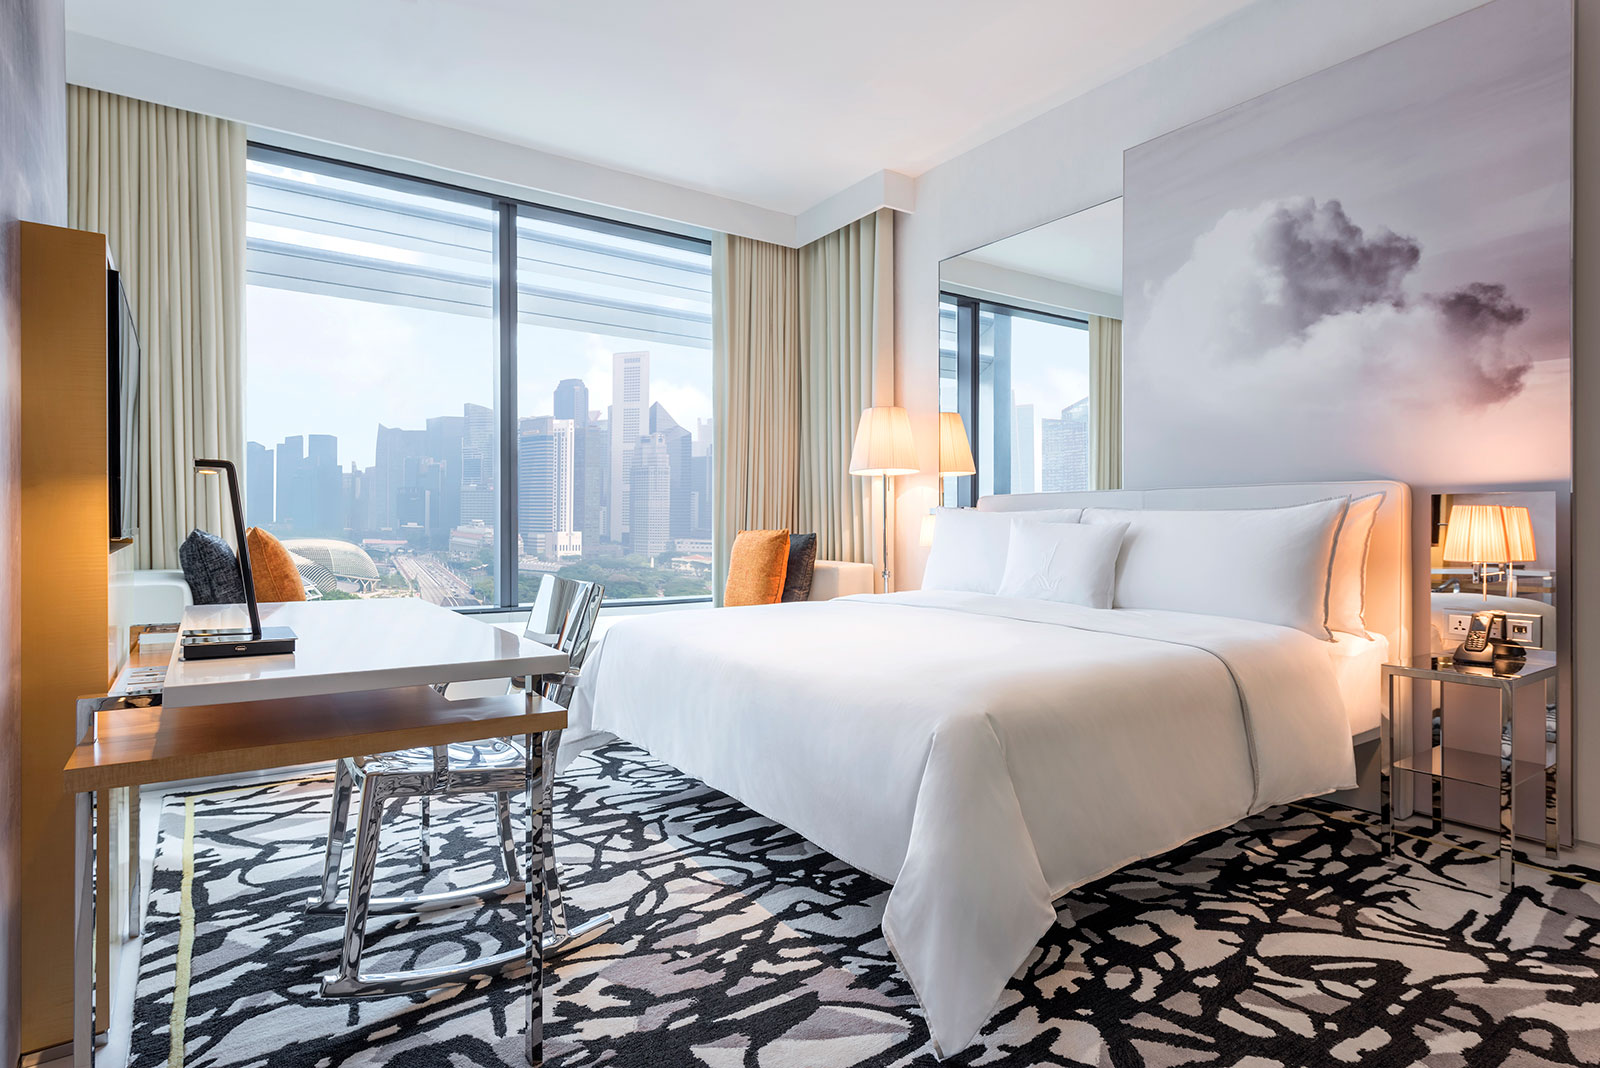 Singapore Gets Its First JW Mariott Hotel - JW Marriott Hotel Singapore South Beach